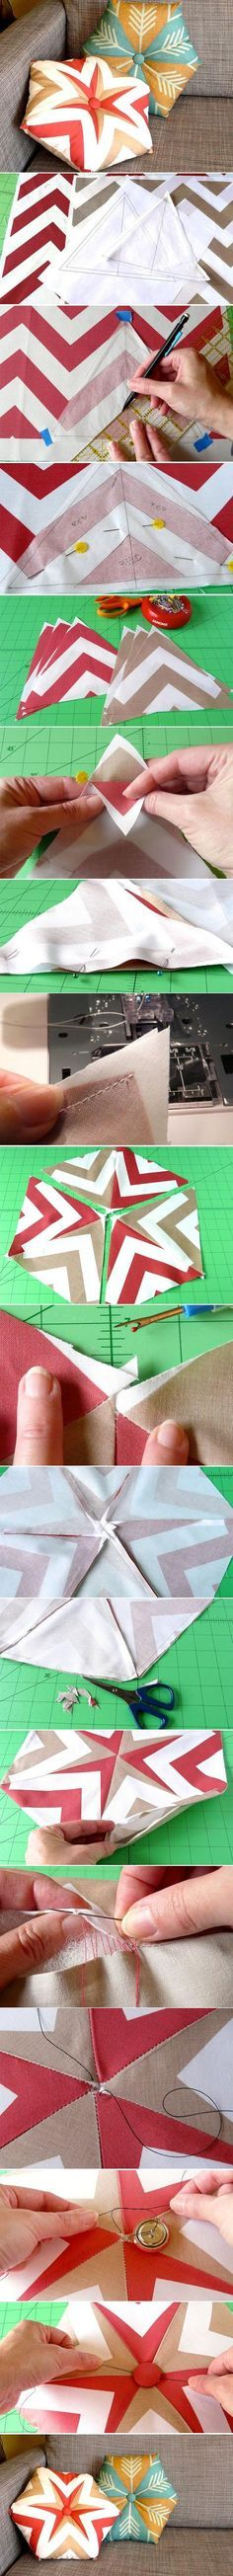 DIY Nice Decorative Pillow